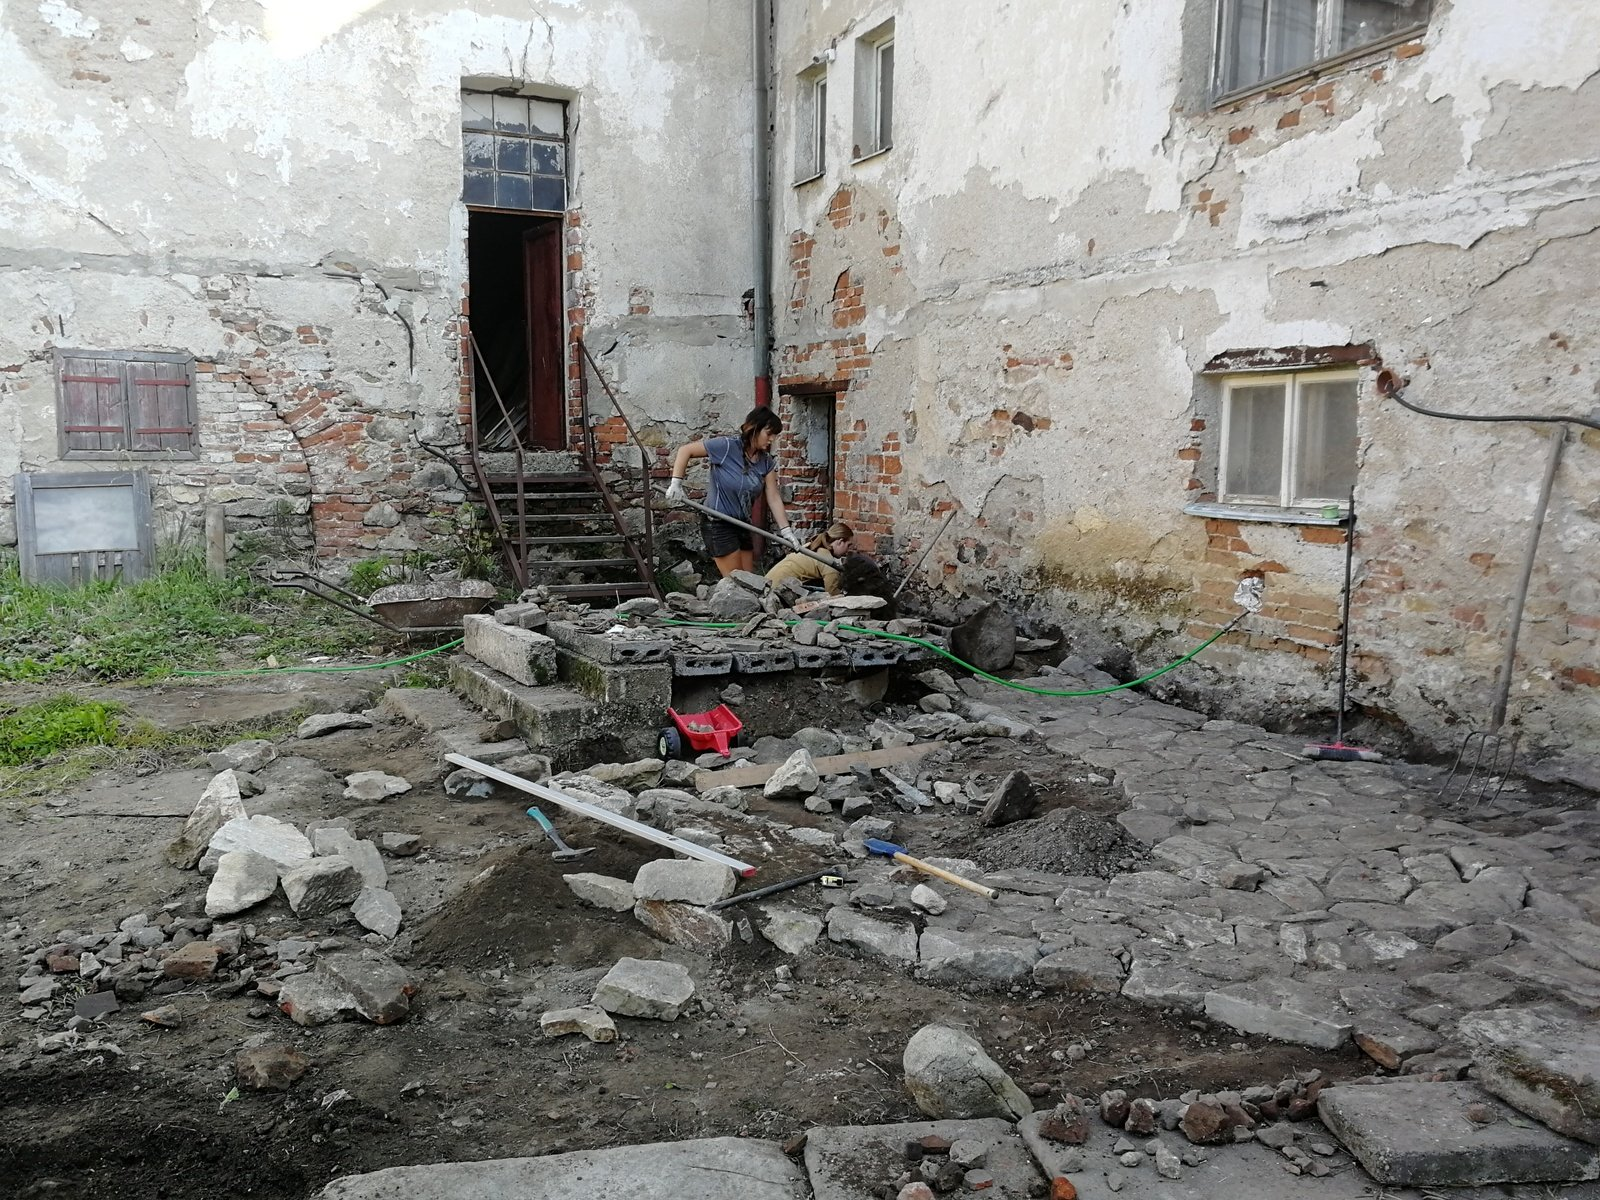 Families Renovate a Historical Site II